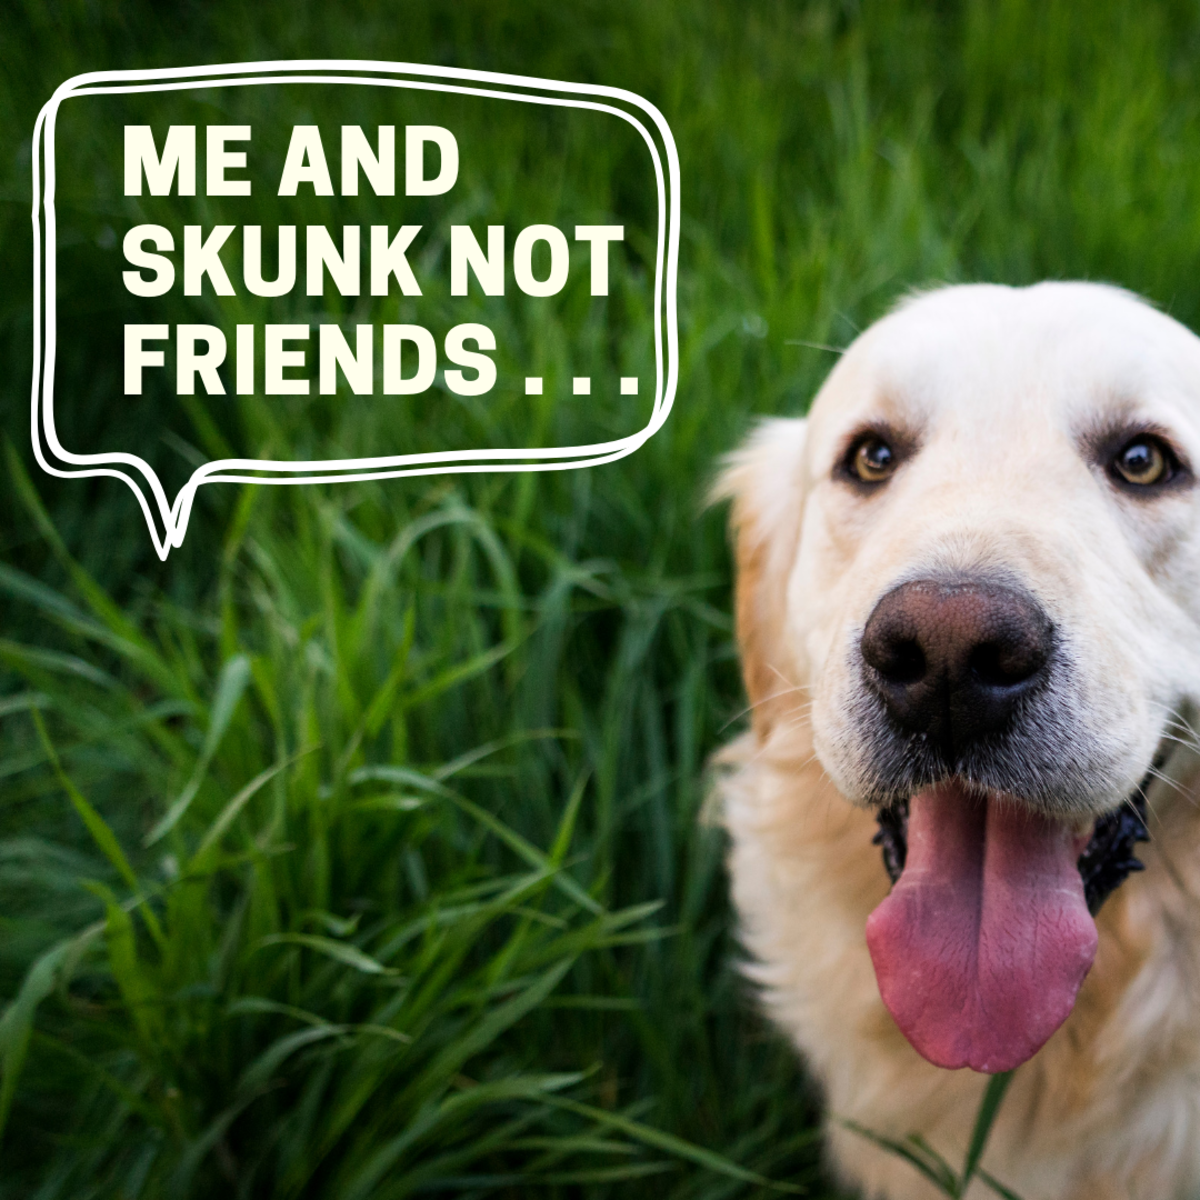 Remedies for Skunk Odor on Dogs